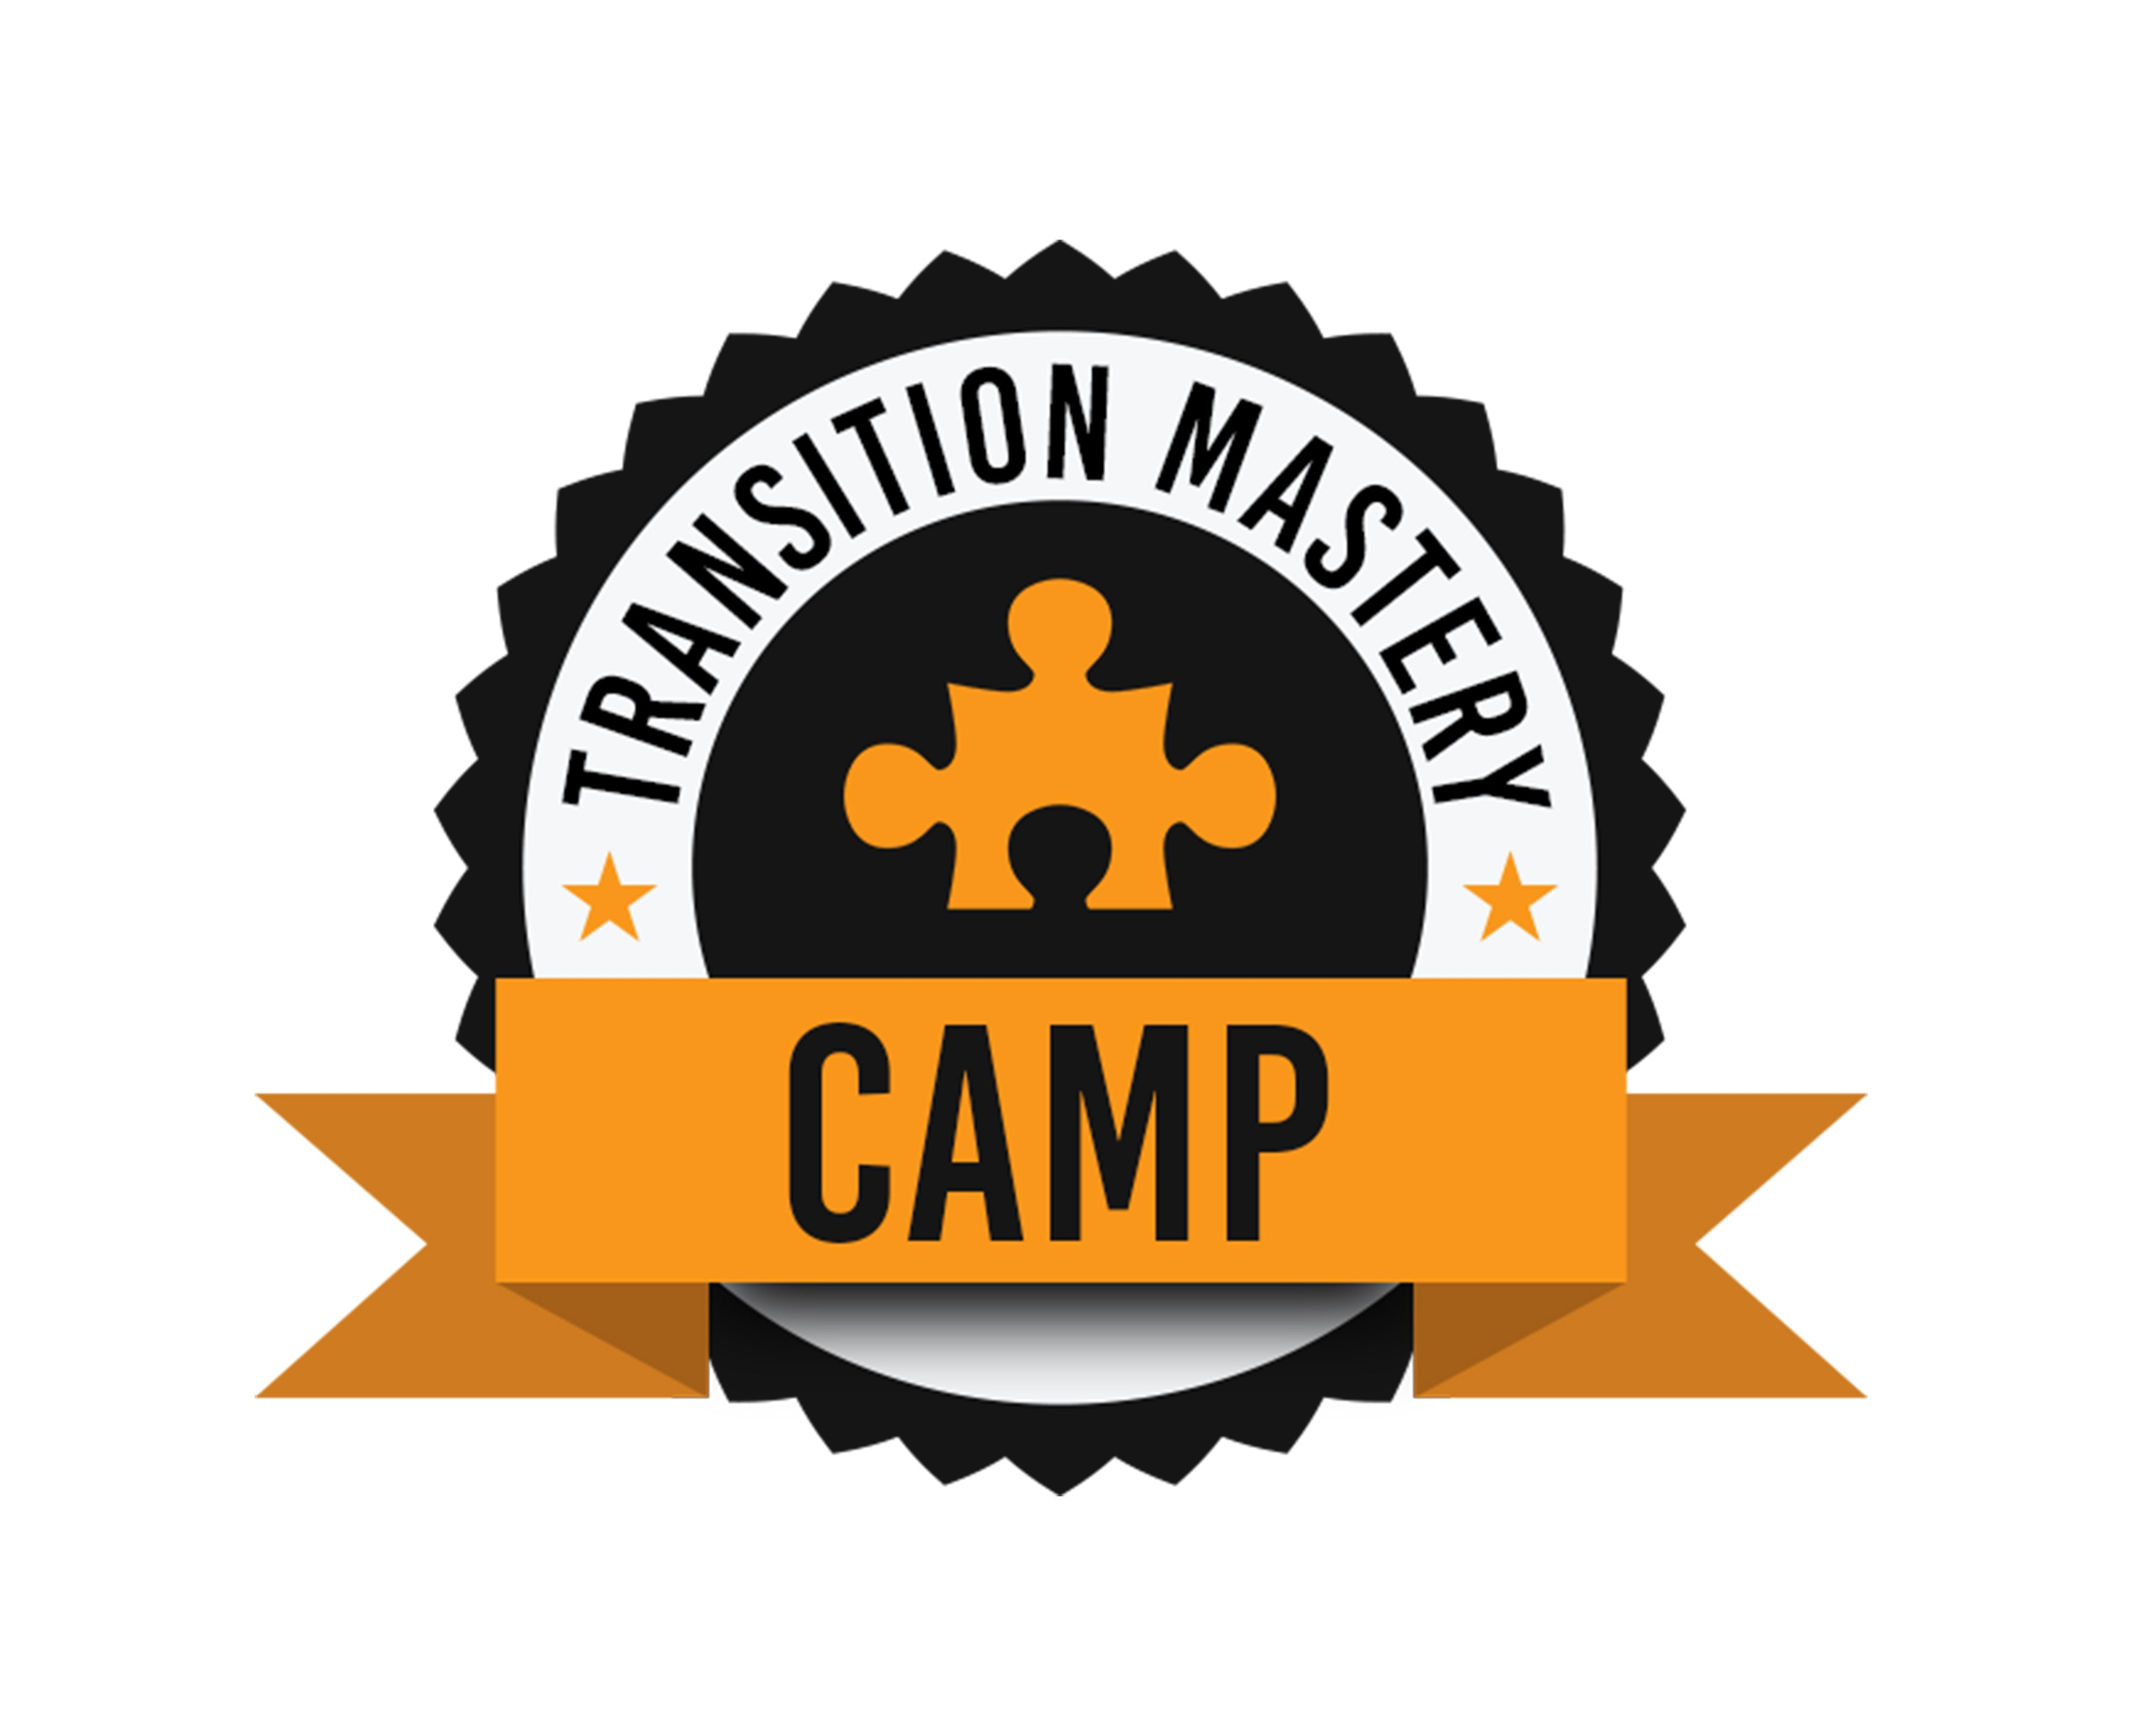 Transition Mastery Camp